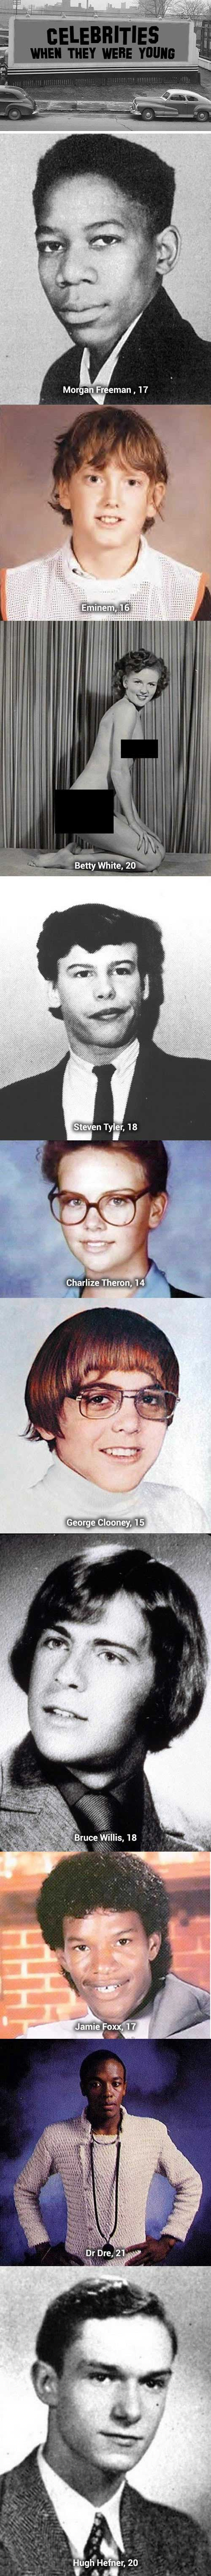 Famous people when they were teenagers